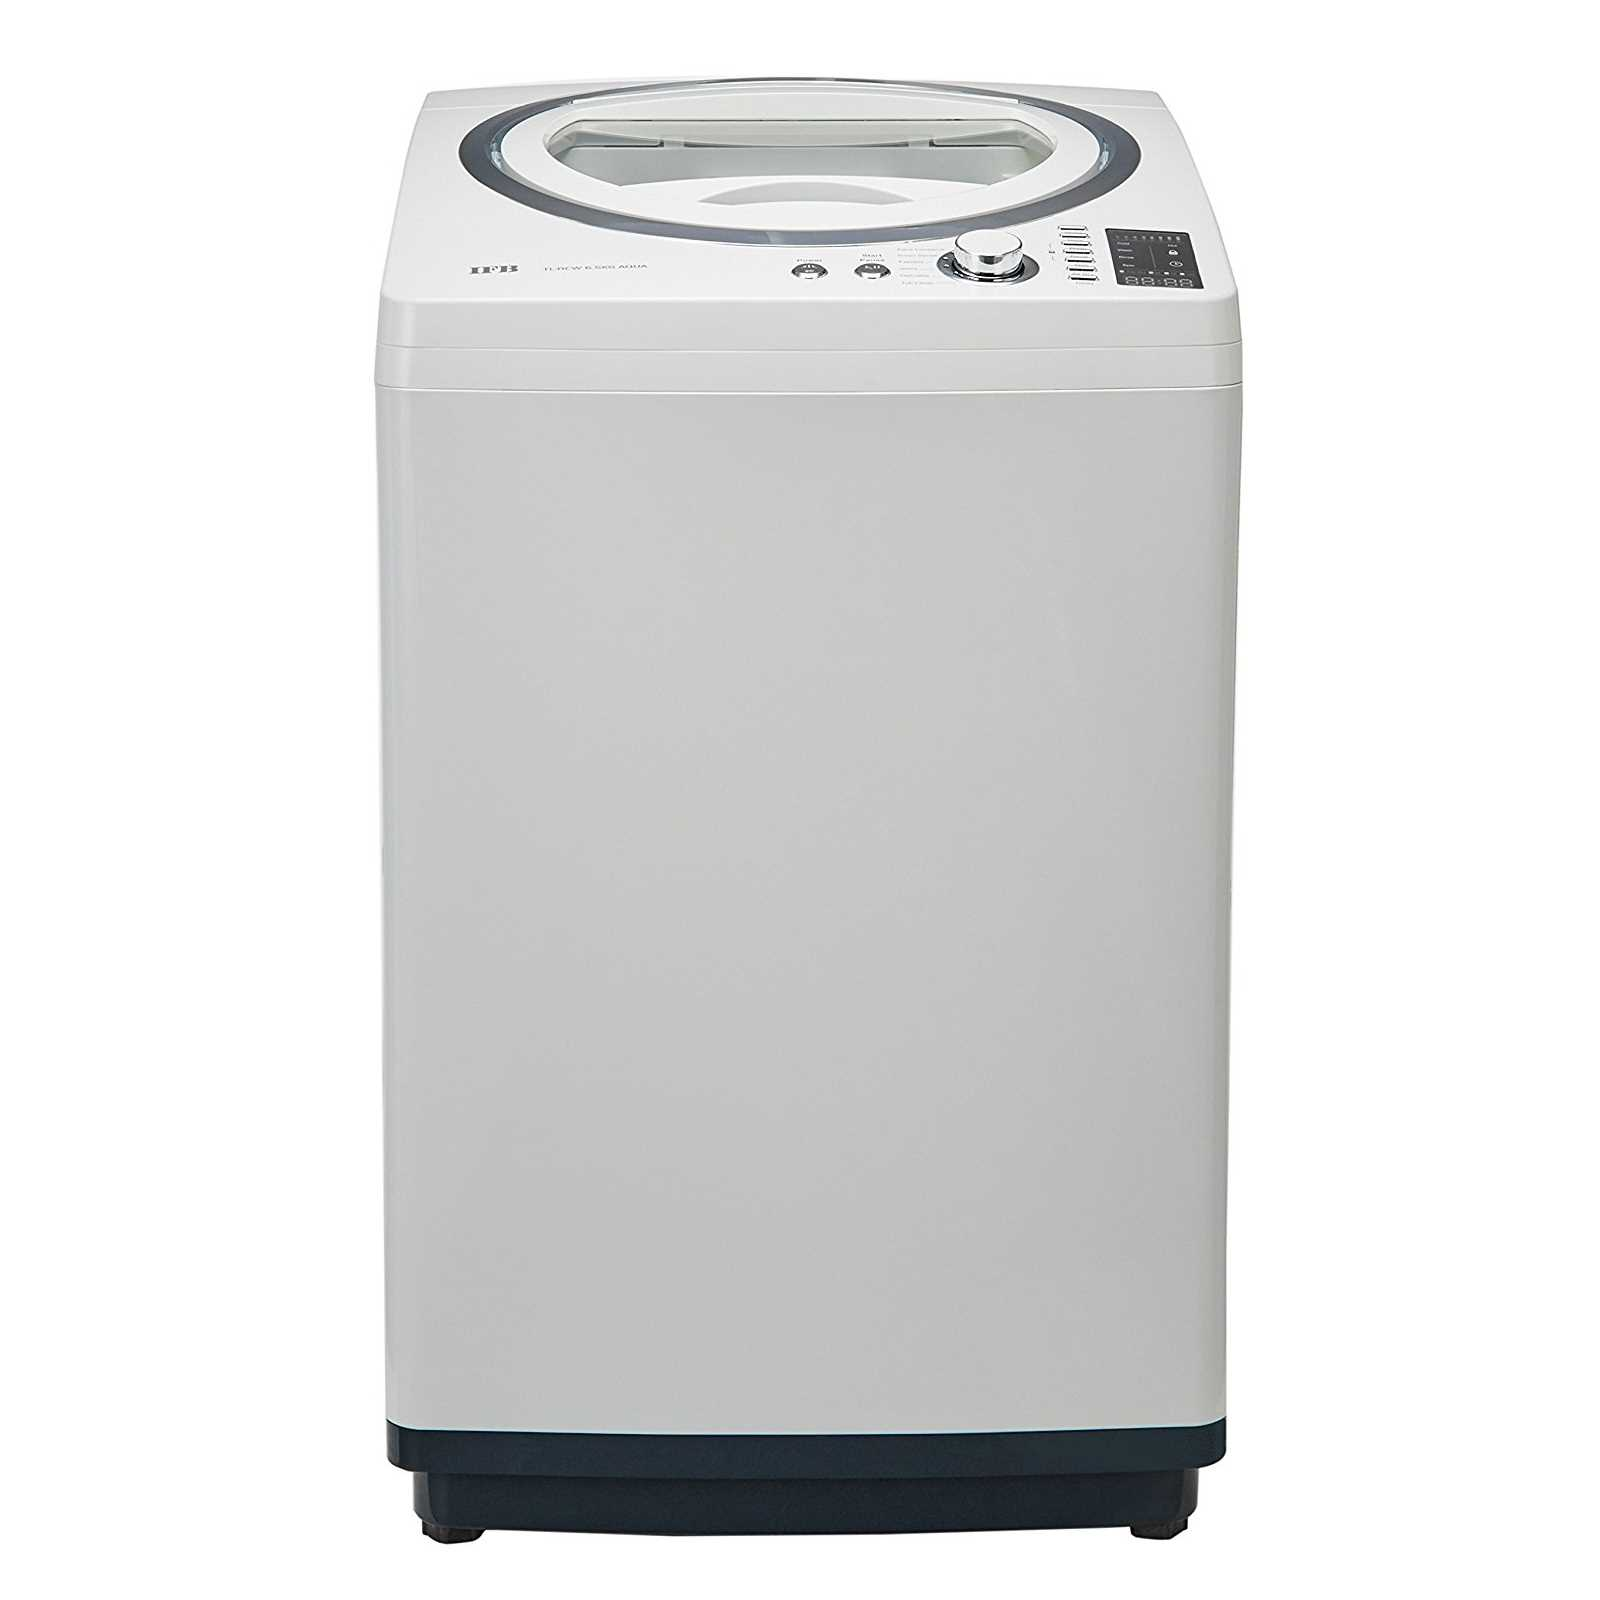 IFB TL RCW Aqua 6.5 Kg Fully Automatic Top Loading Washing Machine